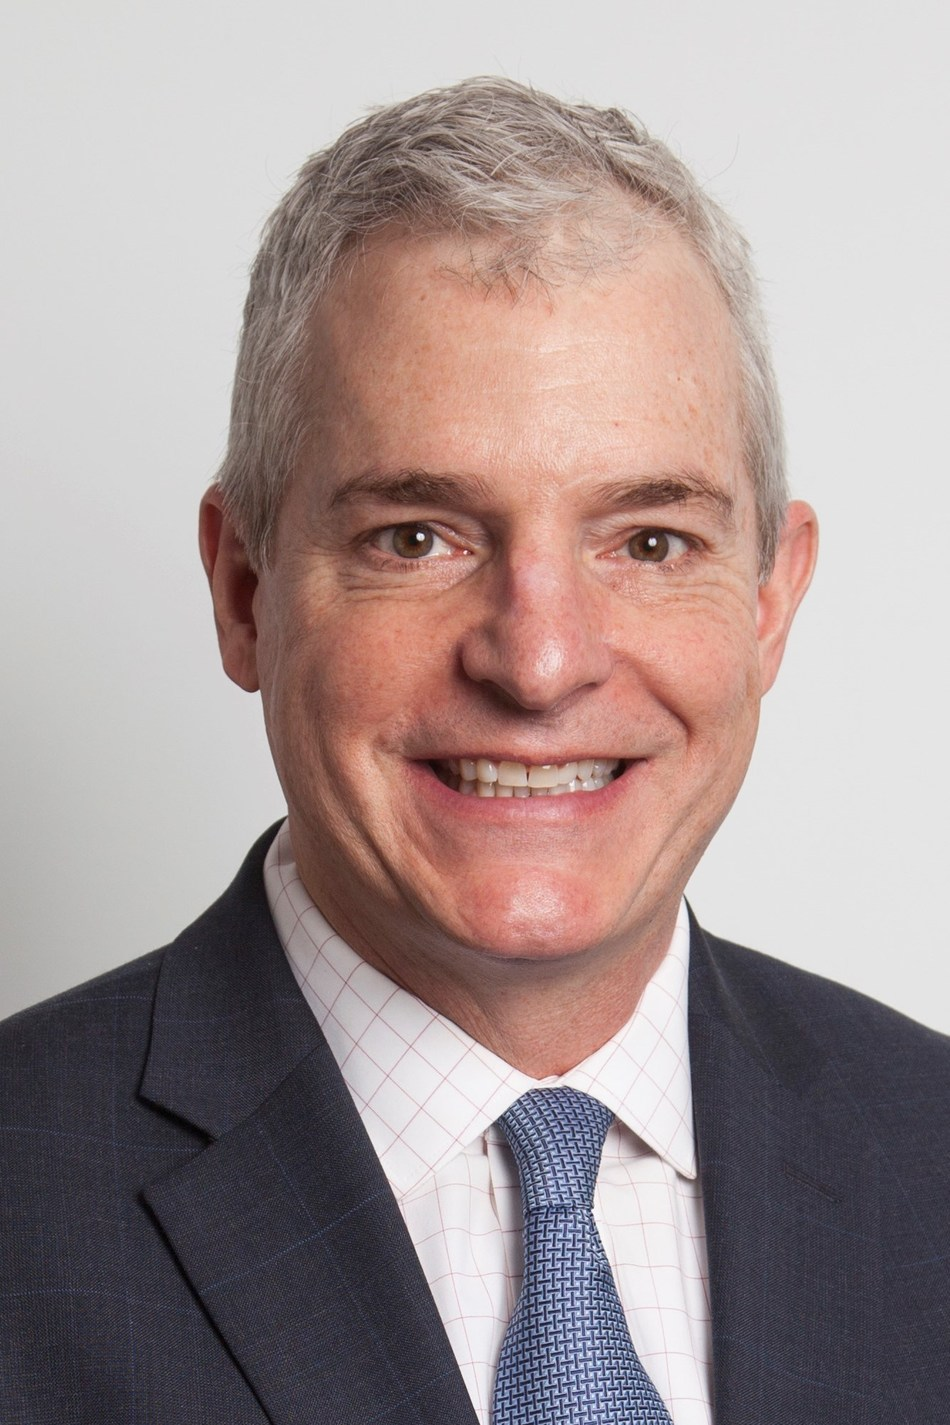 Thomas Weeks, the new executive vice president and head of Development for Rockefeller Group, the national real estate development company.